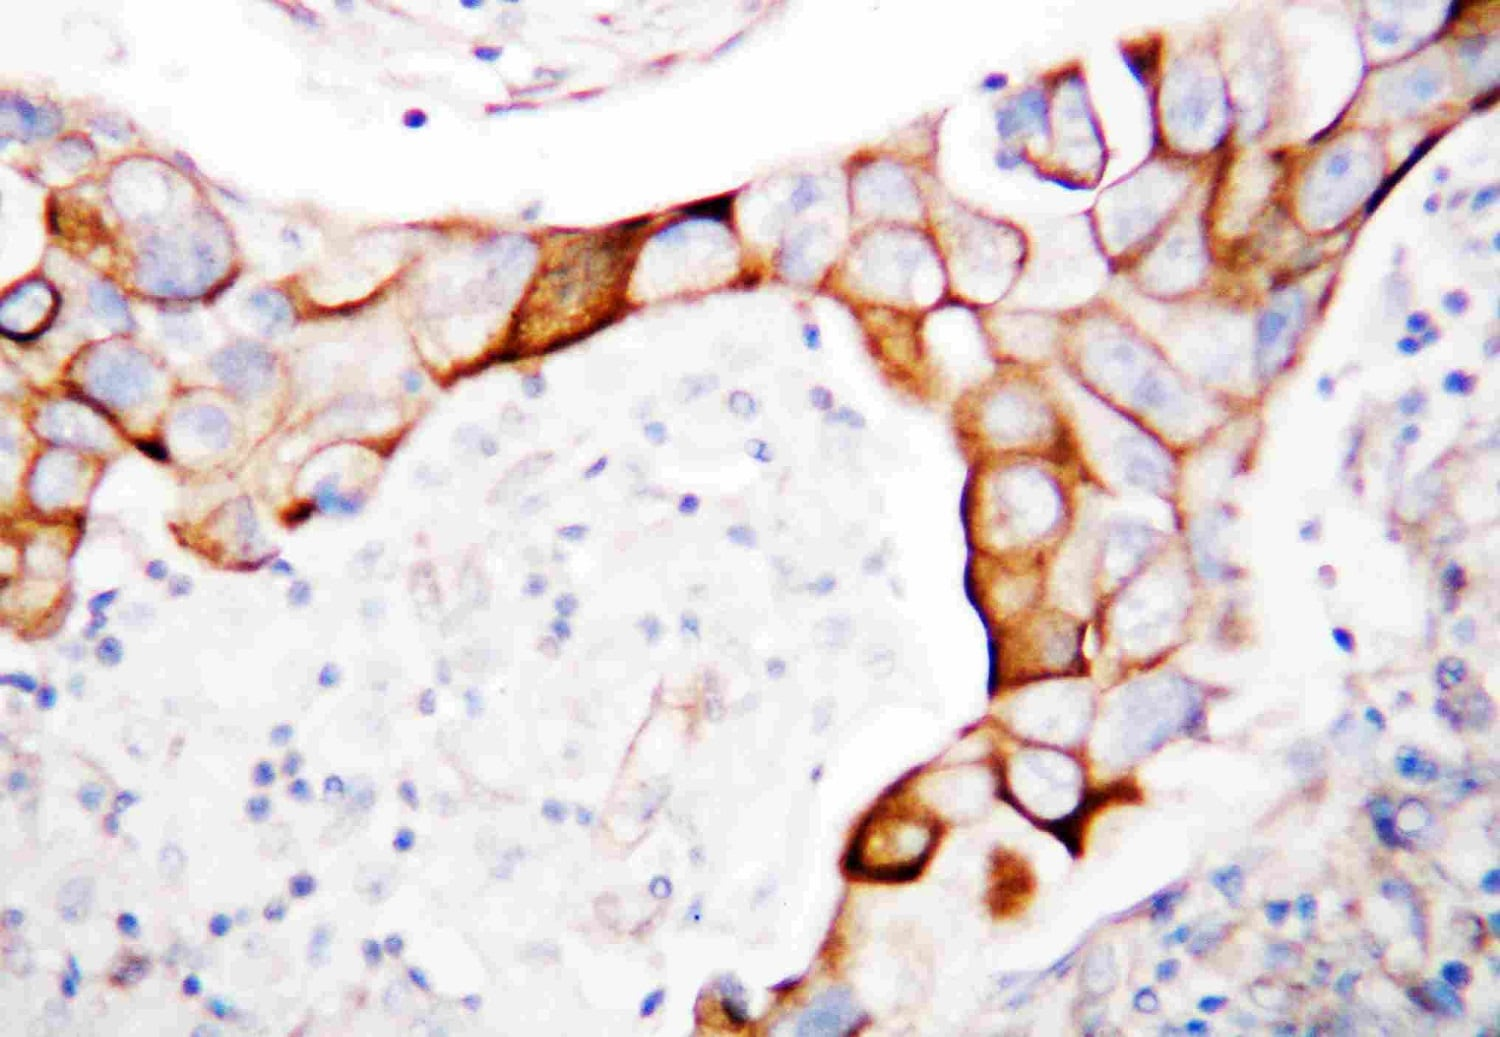 Immunohistochemistry (Formalin/PFA-fixed paraffin-embedded sections) - Anti-CD18 antibody (ab131044)